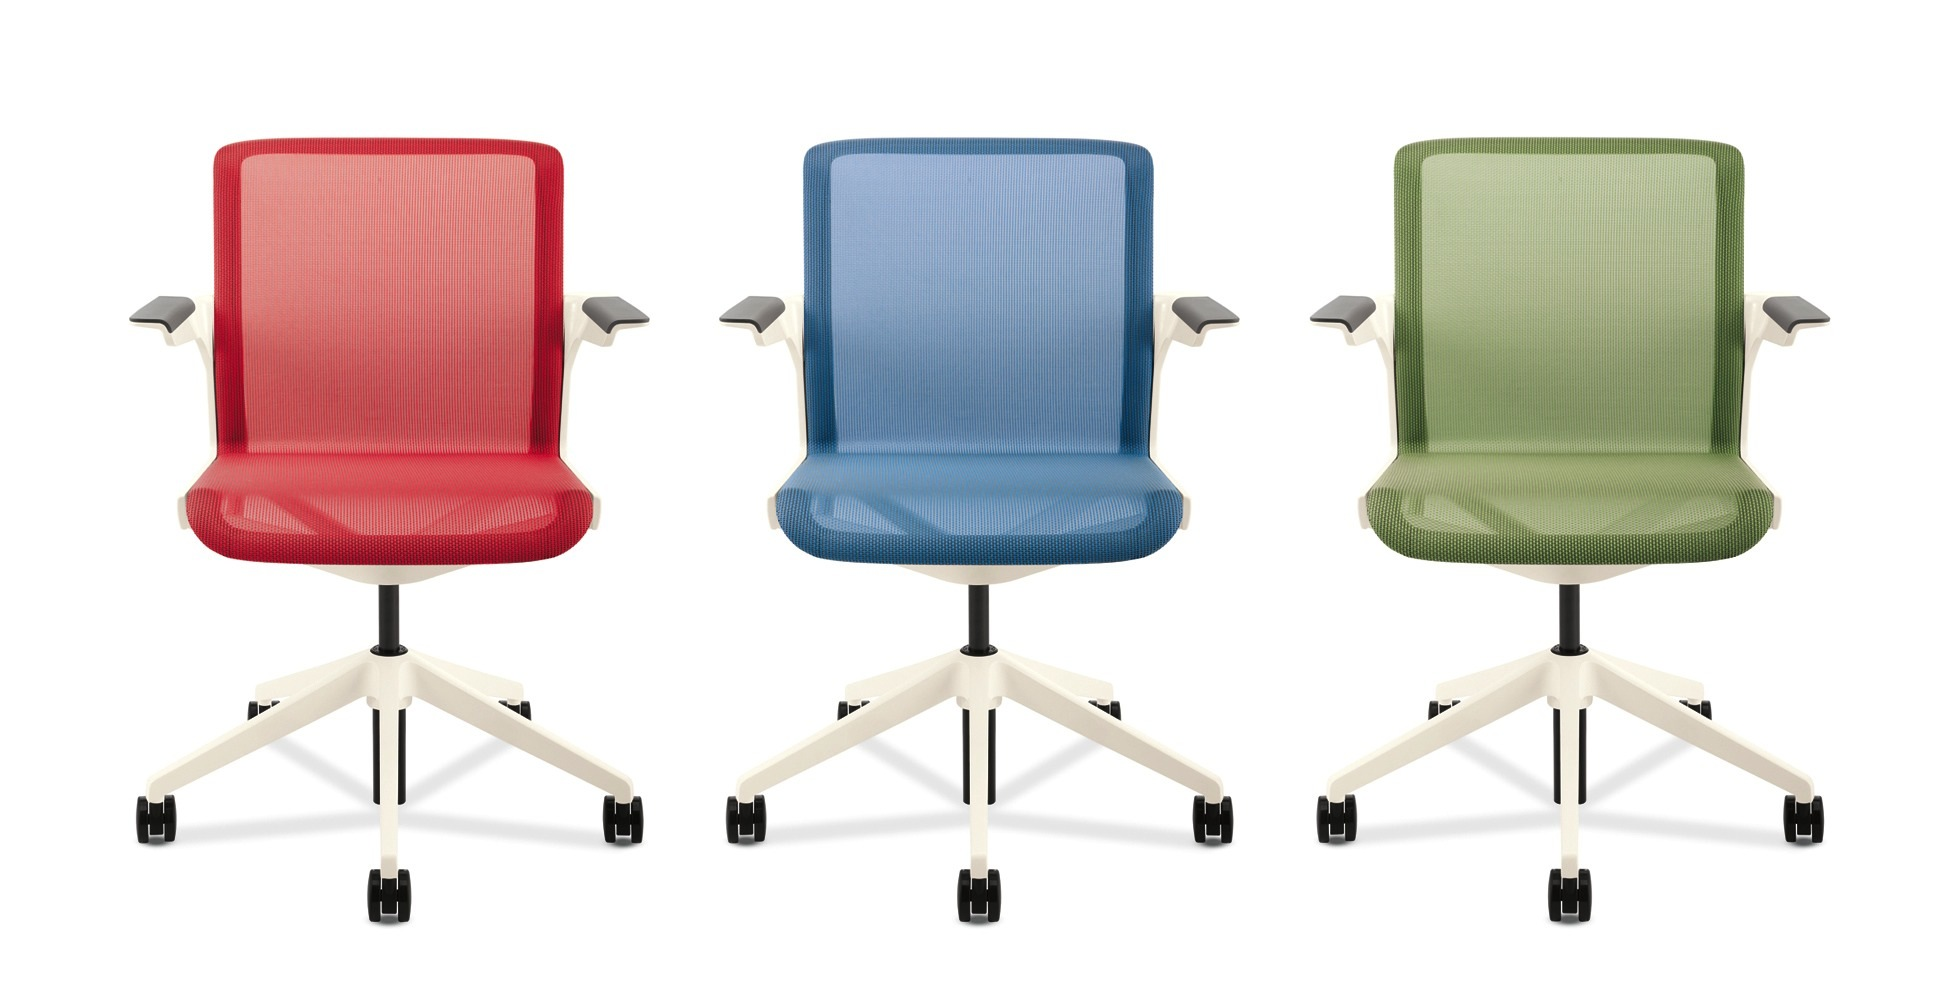 BMW DesignworksUSA and Allsteel Design Award Winning Chair